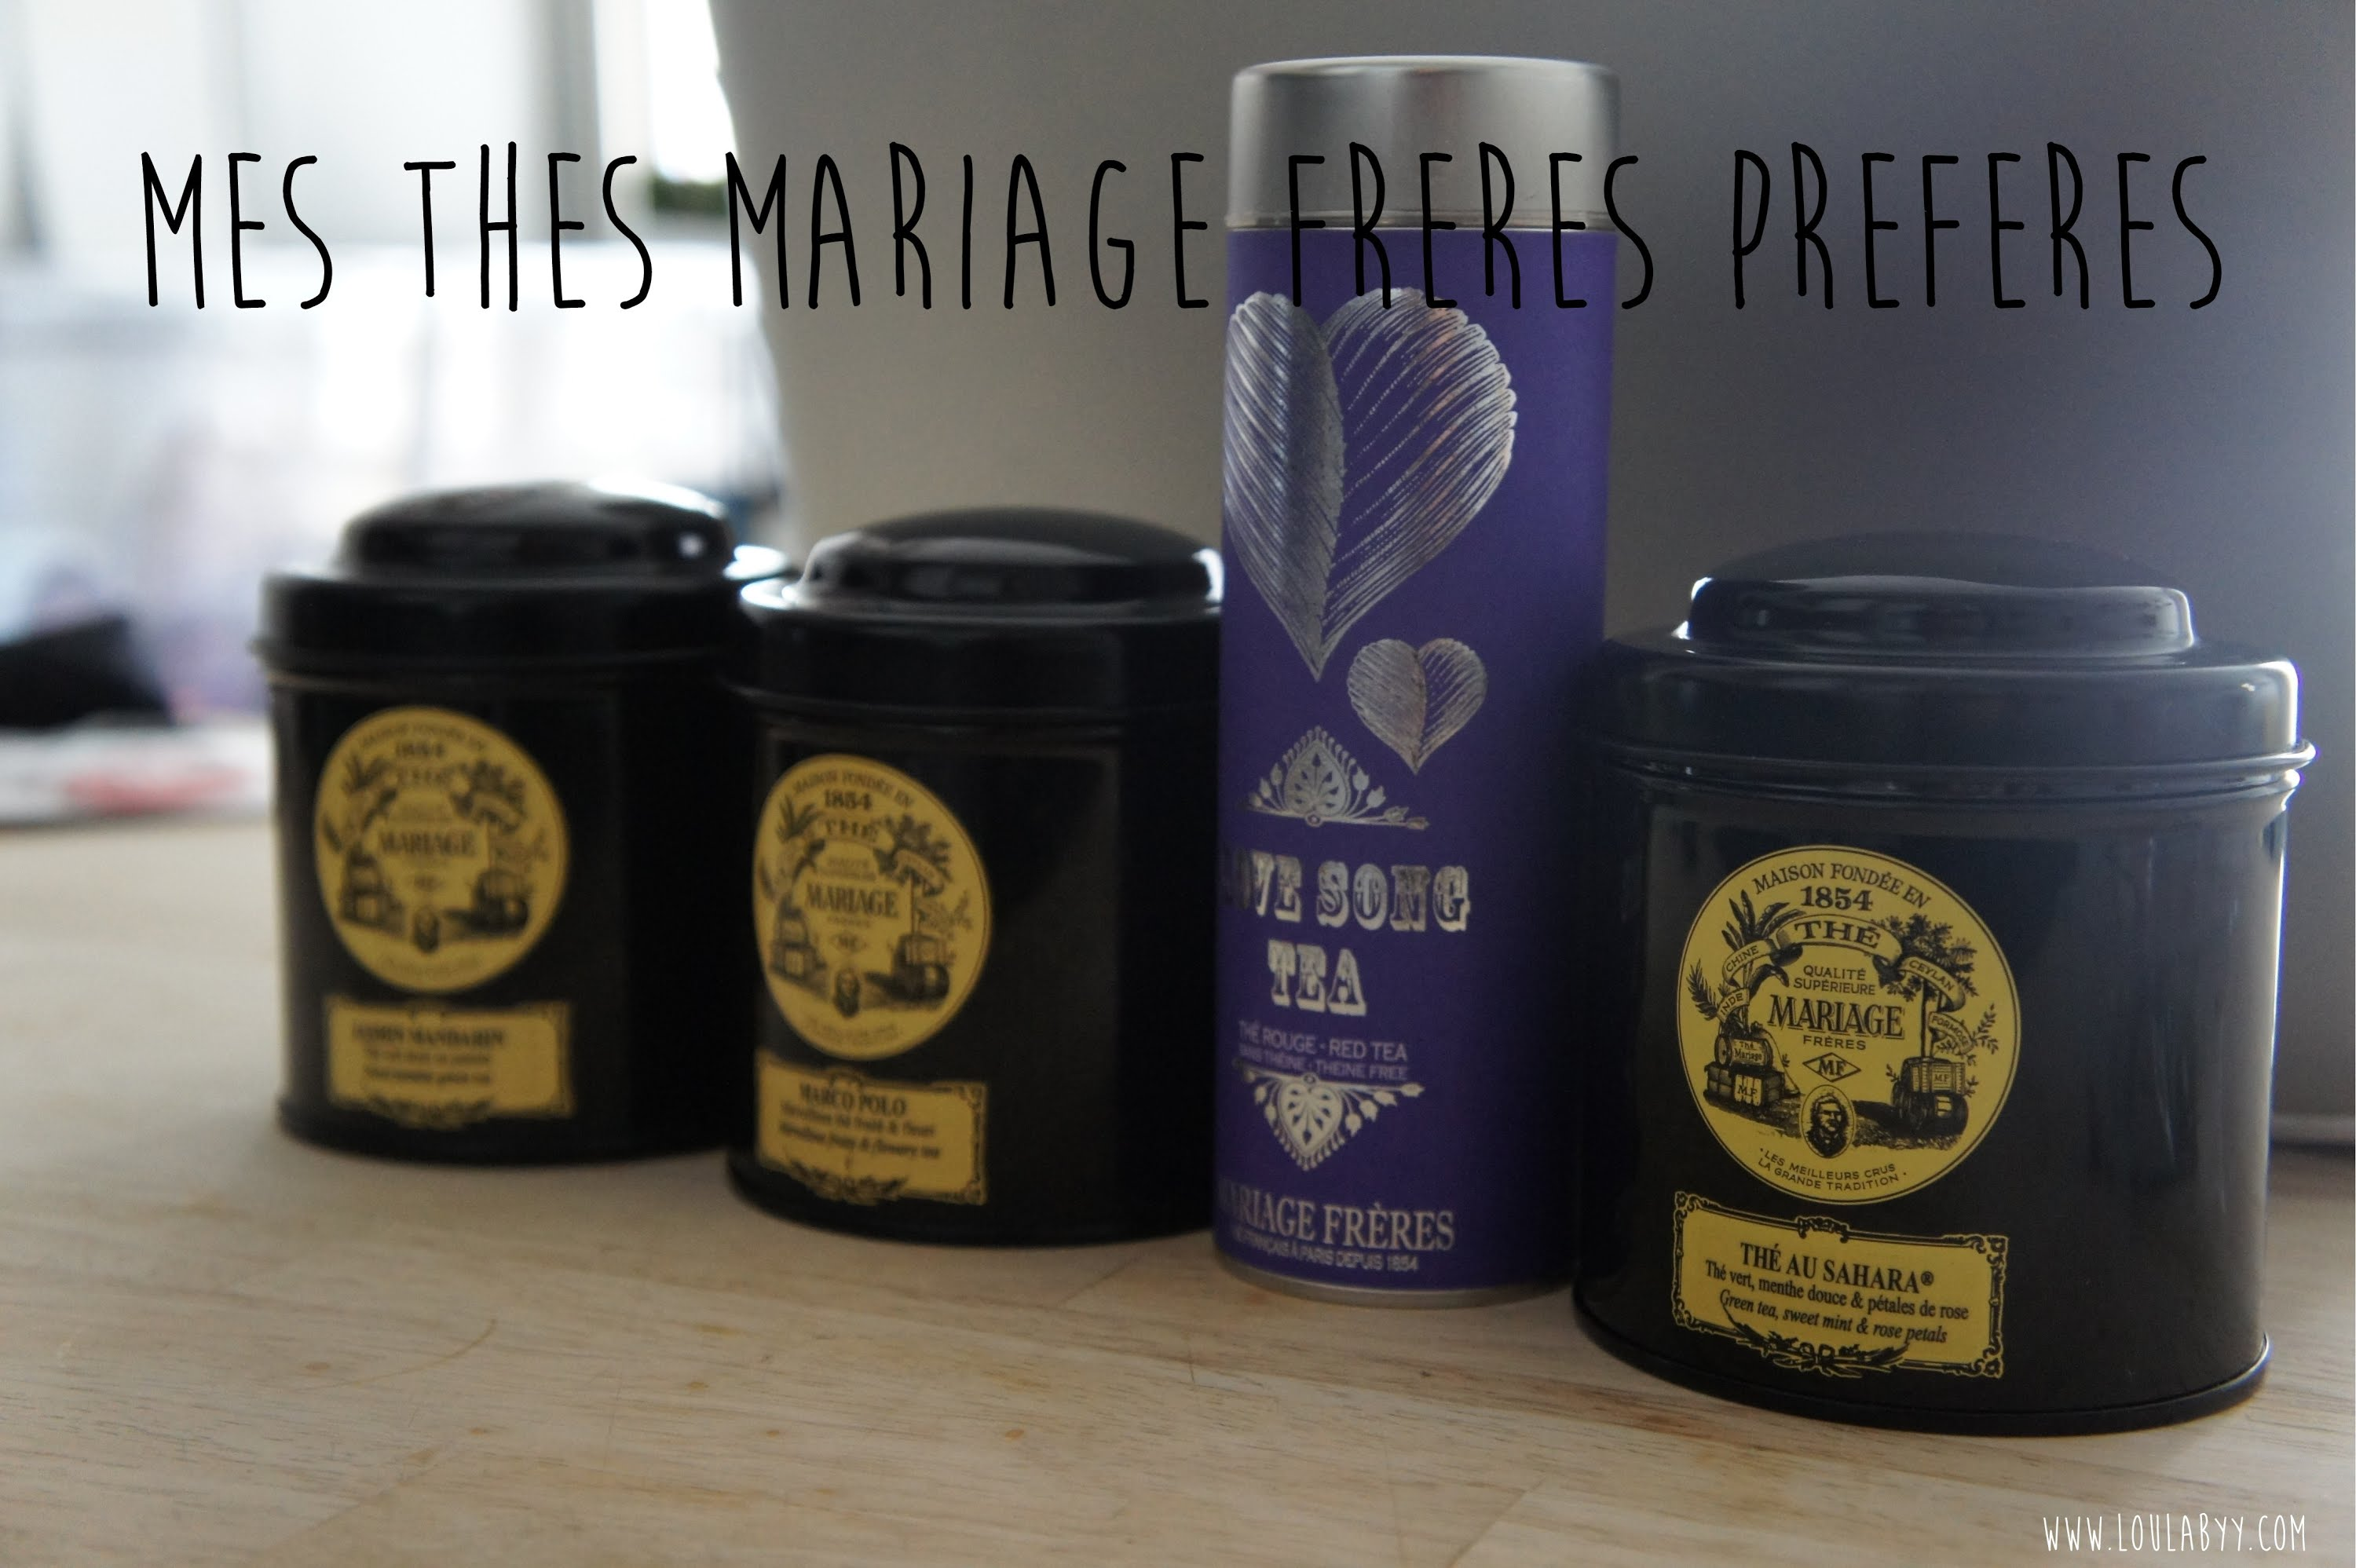 the menthe mariage frere